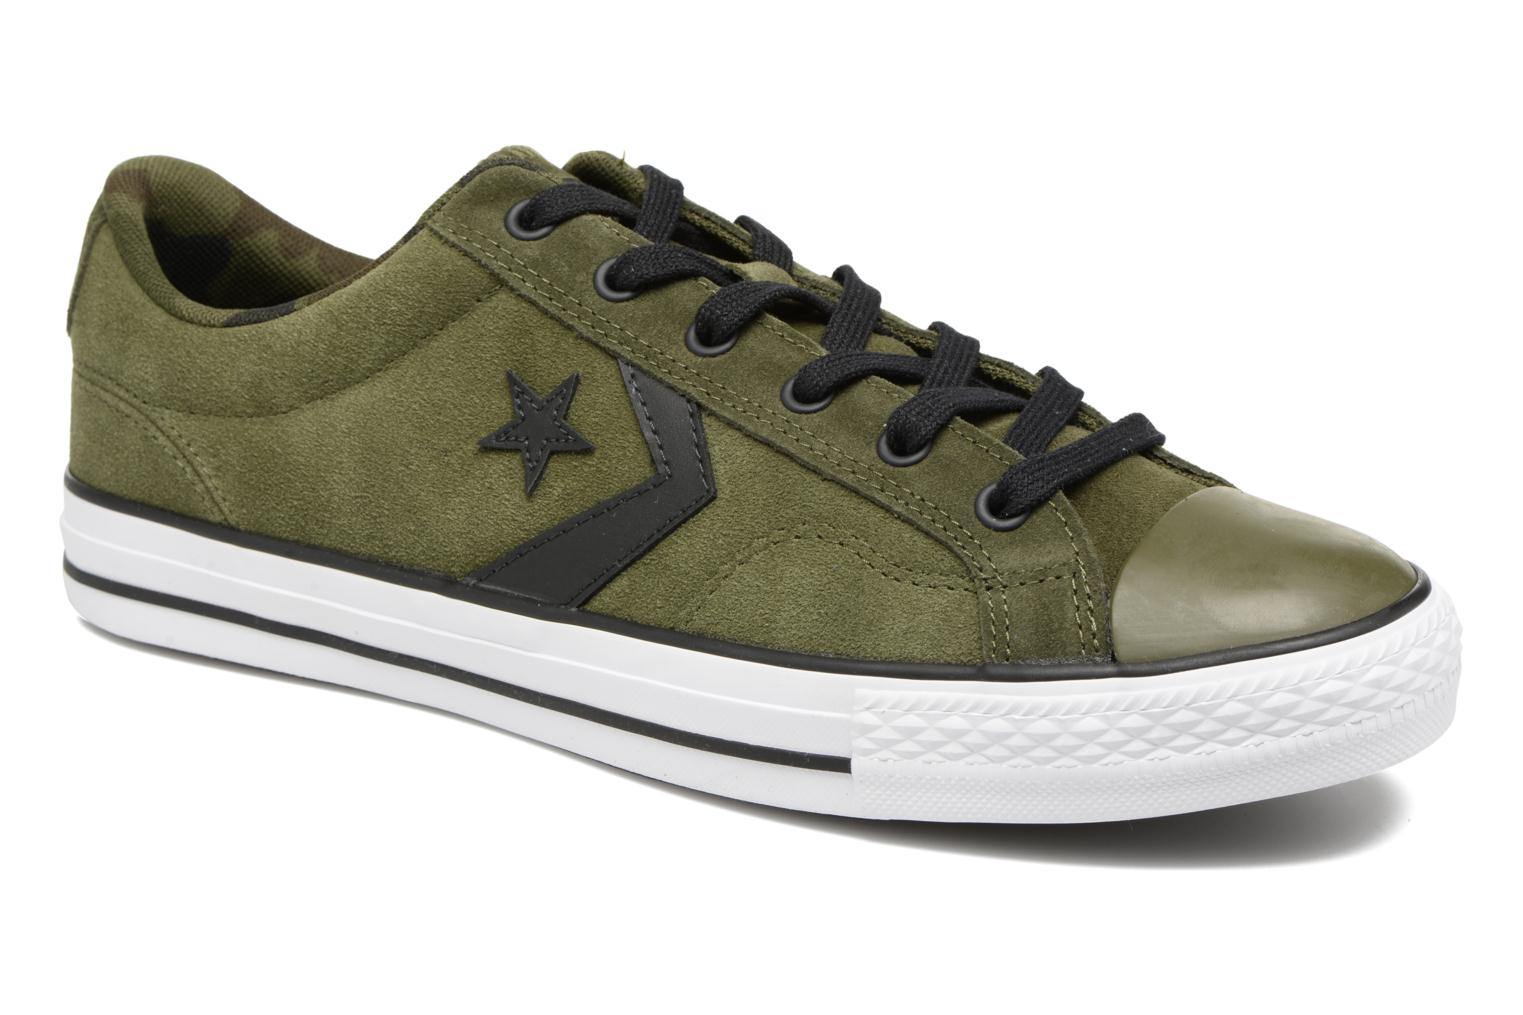 5fb14e46b1 ... inexpensive trainers converse star player camo suede ox green detailed  view pair view 67bd0 bc659 ...